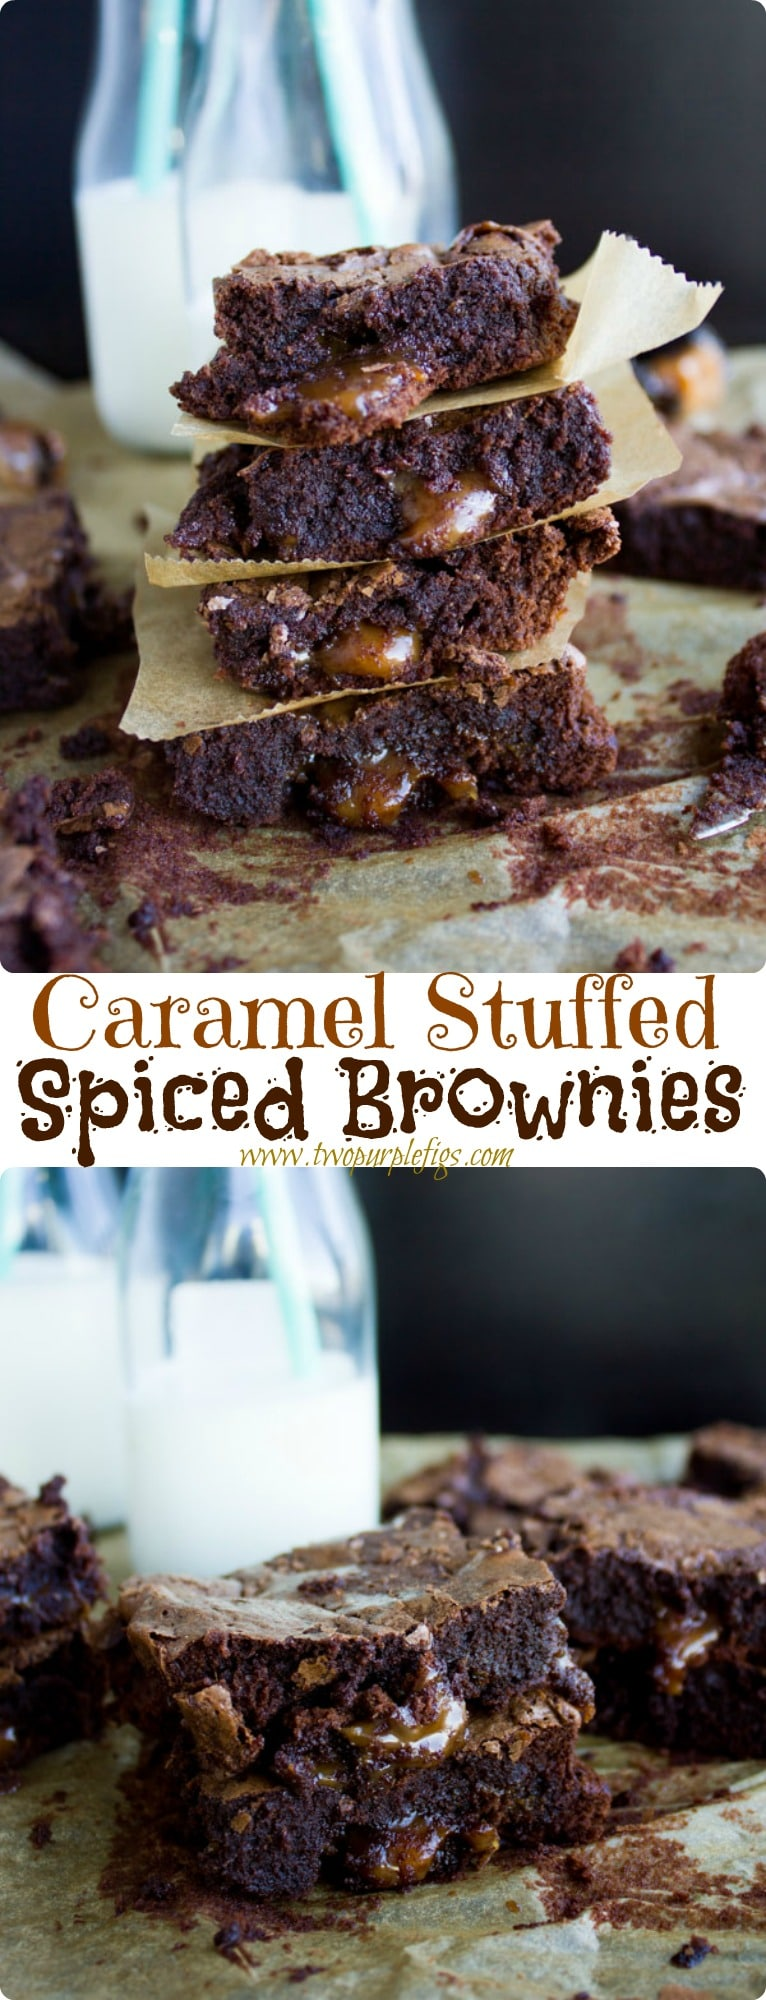 This Caramel Stuffed Spiced Brownies recipe is as every bit as intriguing and decadent as it sounds. Picture a cayenne-spiced, fudgy brownie with loads of golden caramel oozing out of every bite! #browniesrecipe, #caramelbrownies, #desserts, #lunchboxtreat